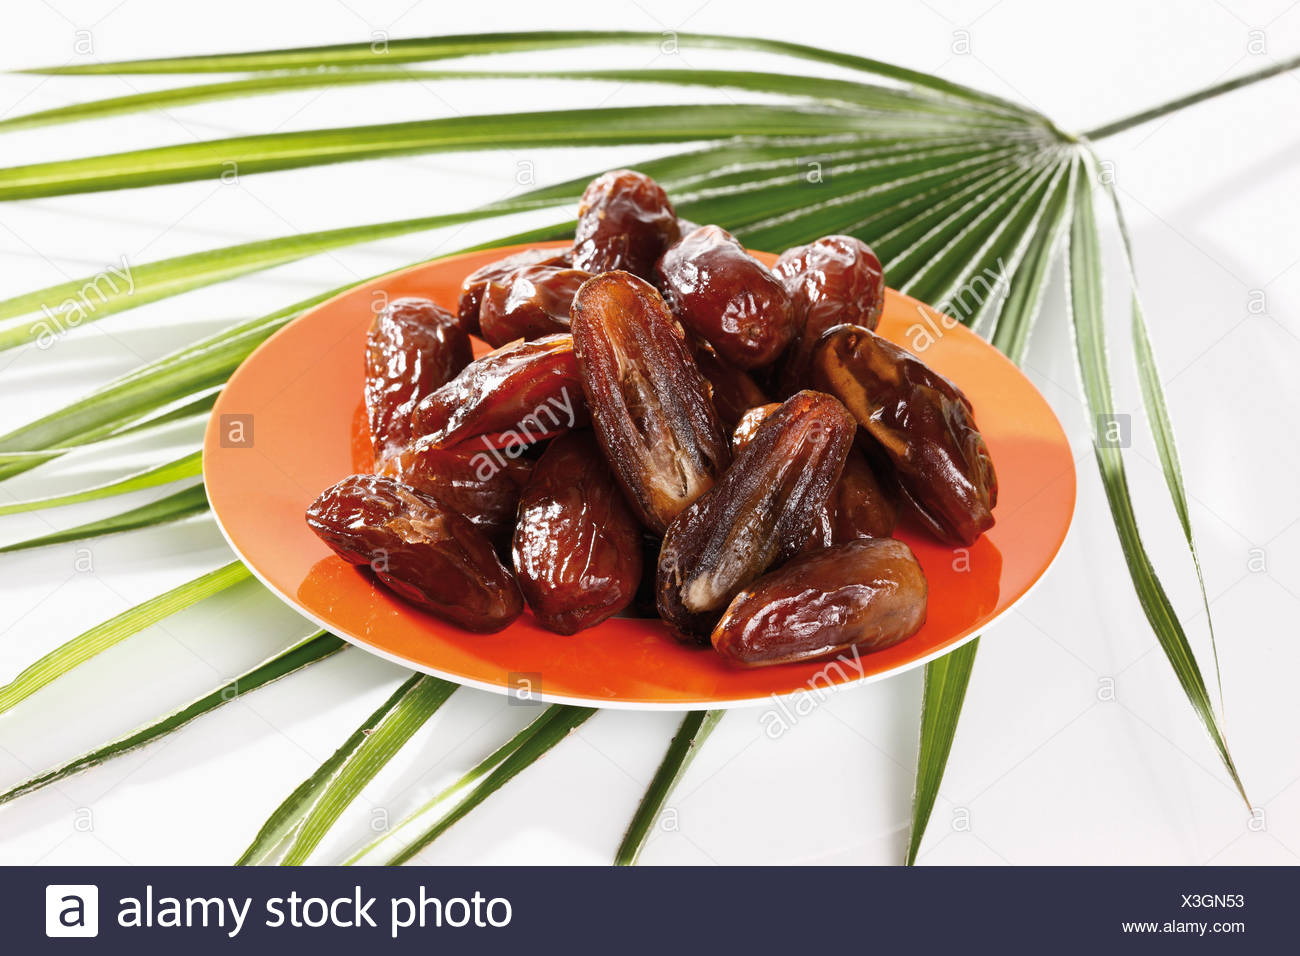 Dried Dates on plate, elevated view - Stock Image